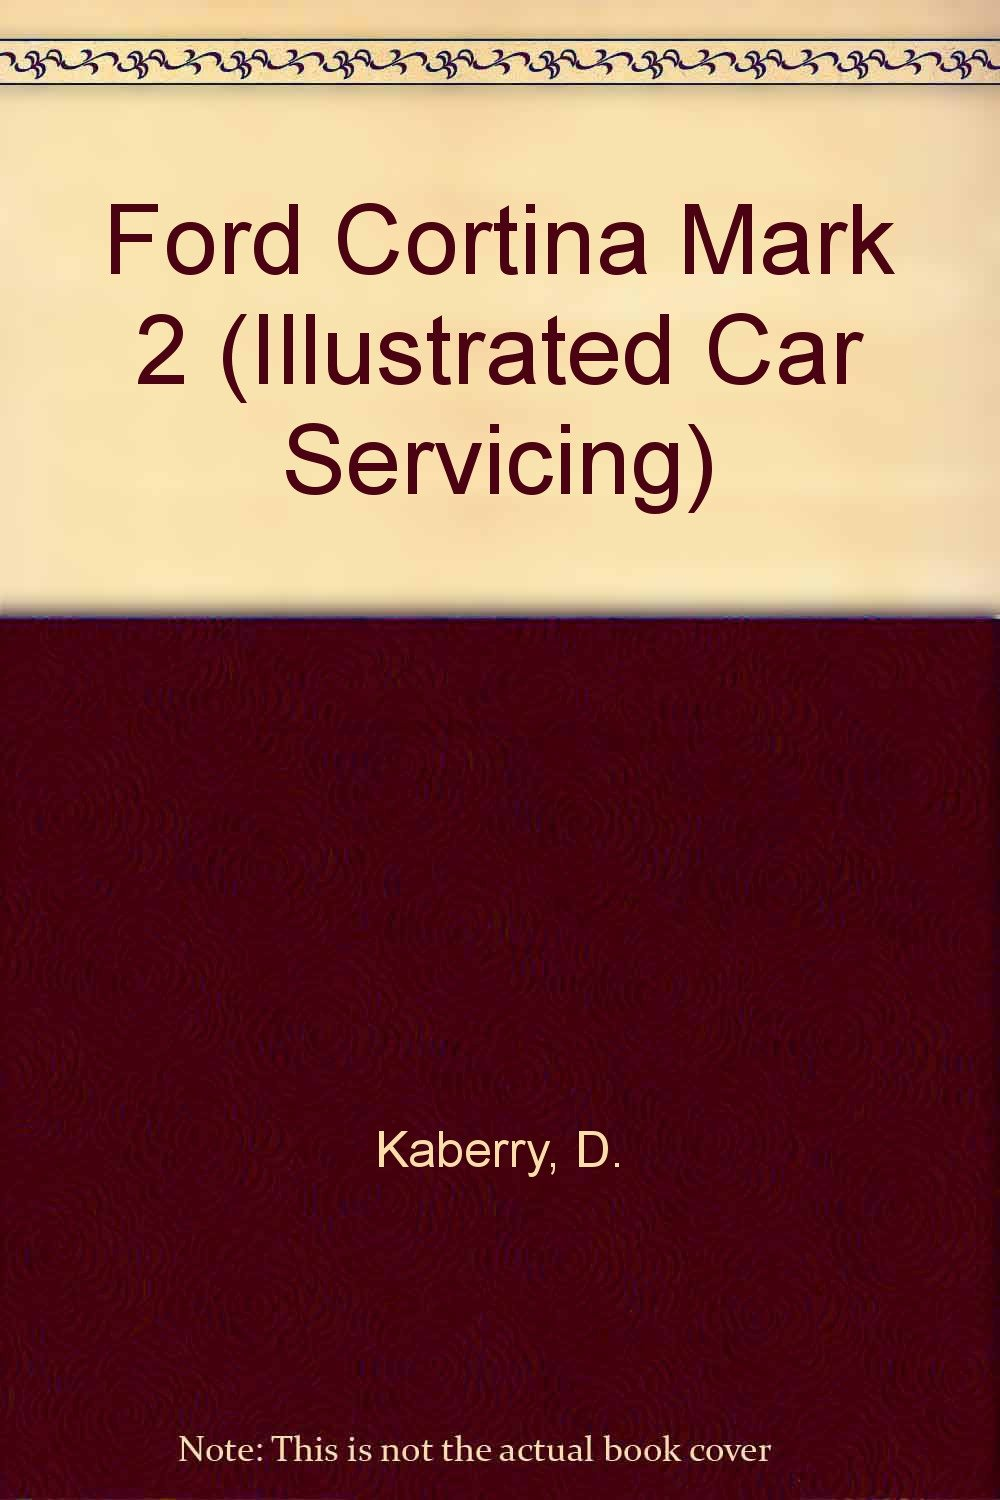 Ford Cortina Mark 2 (Illustrated Car Servicing S.) Kaberry, D.